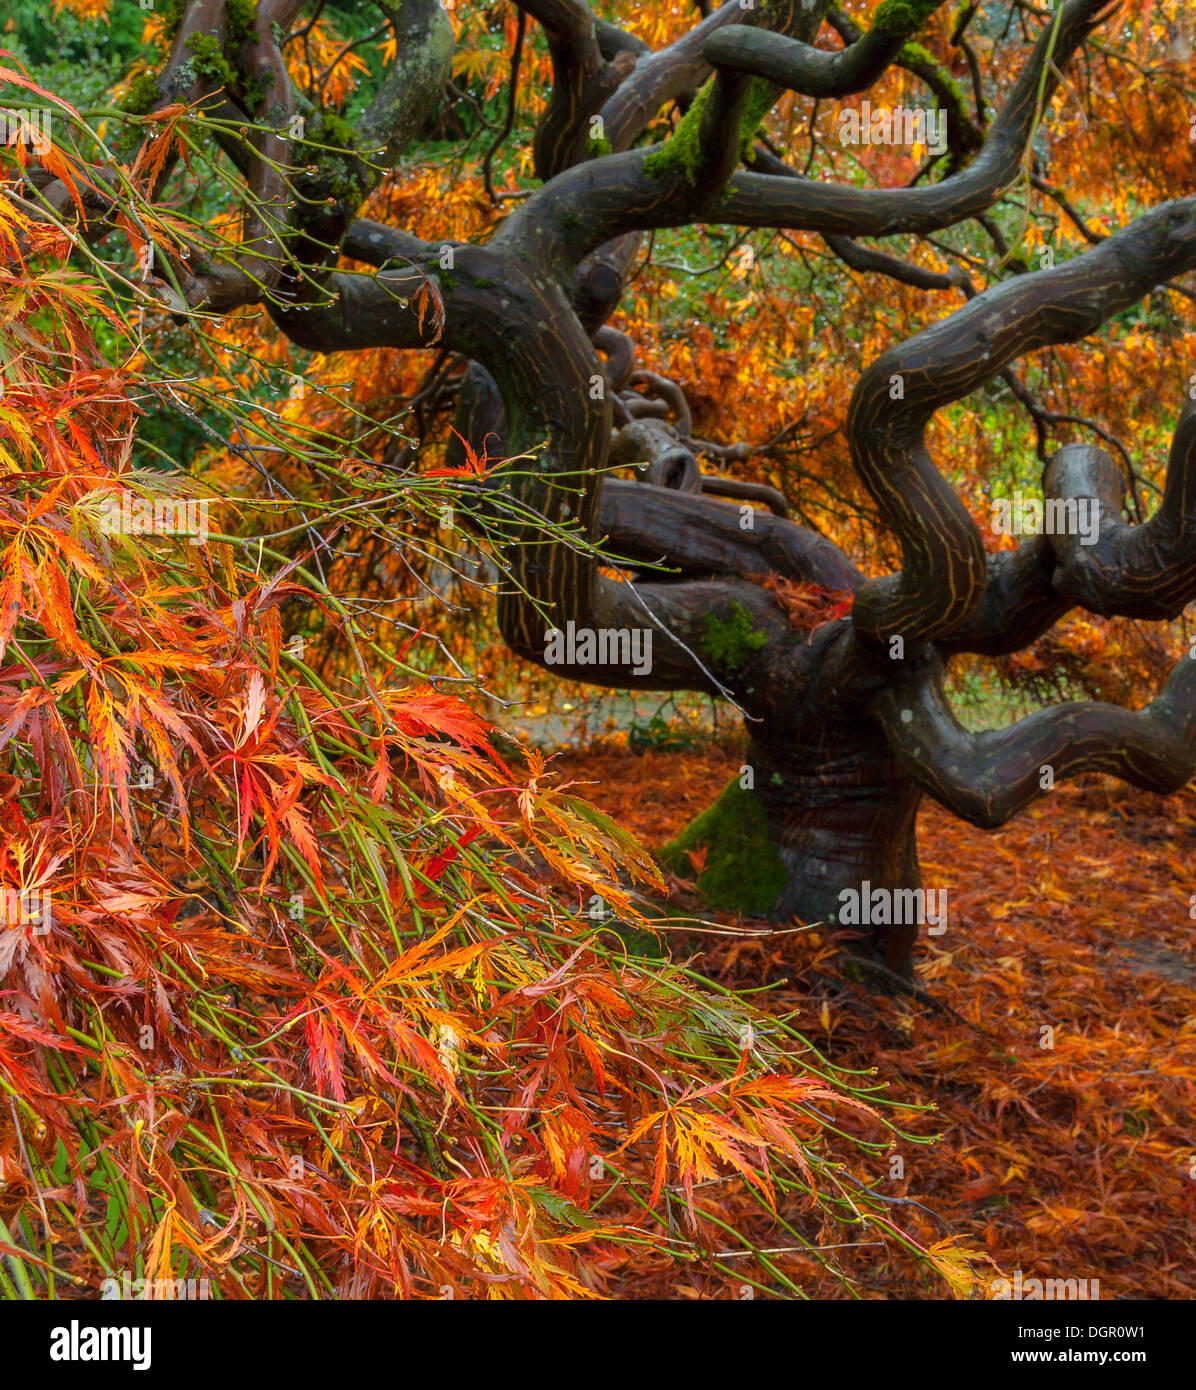 Kubota Garden, Seattle, WA: Twisted trunk and branches of a lace-leafed Japanese maple in fall color - Stock Image